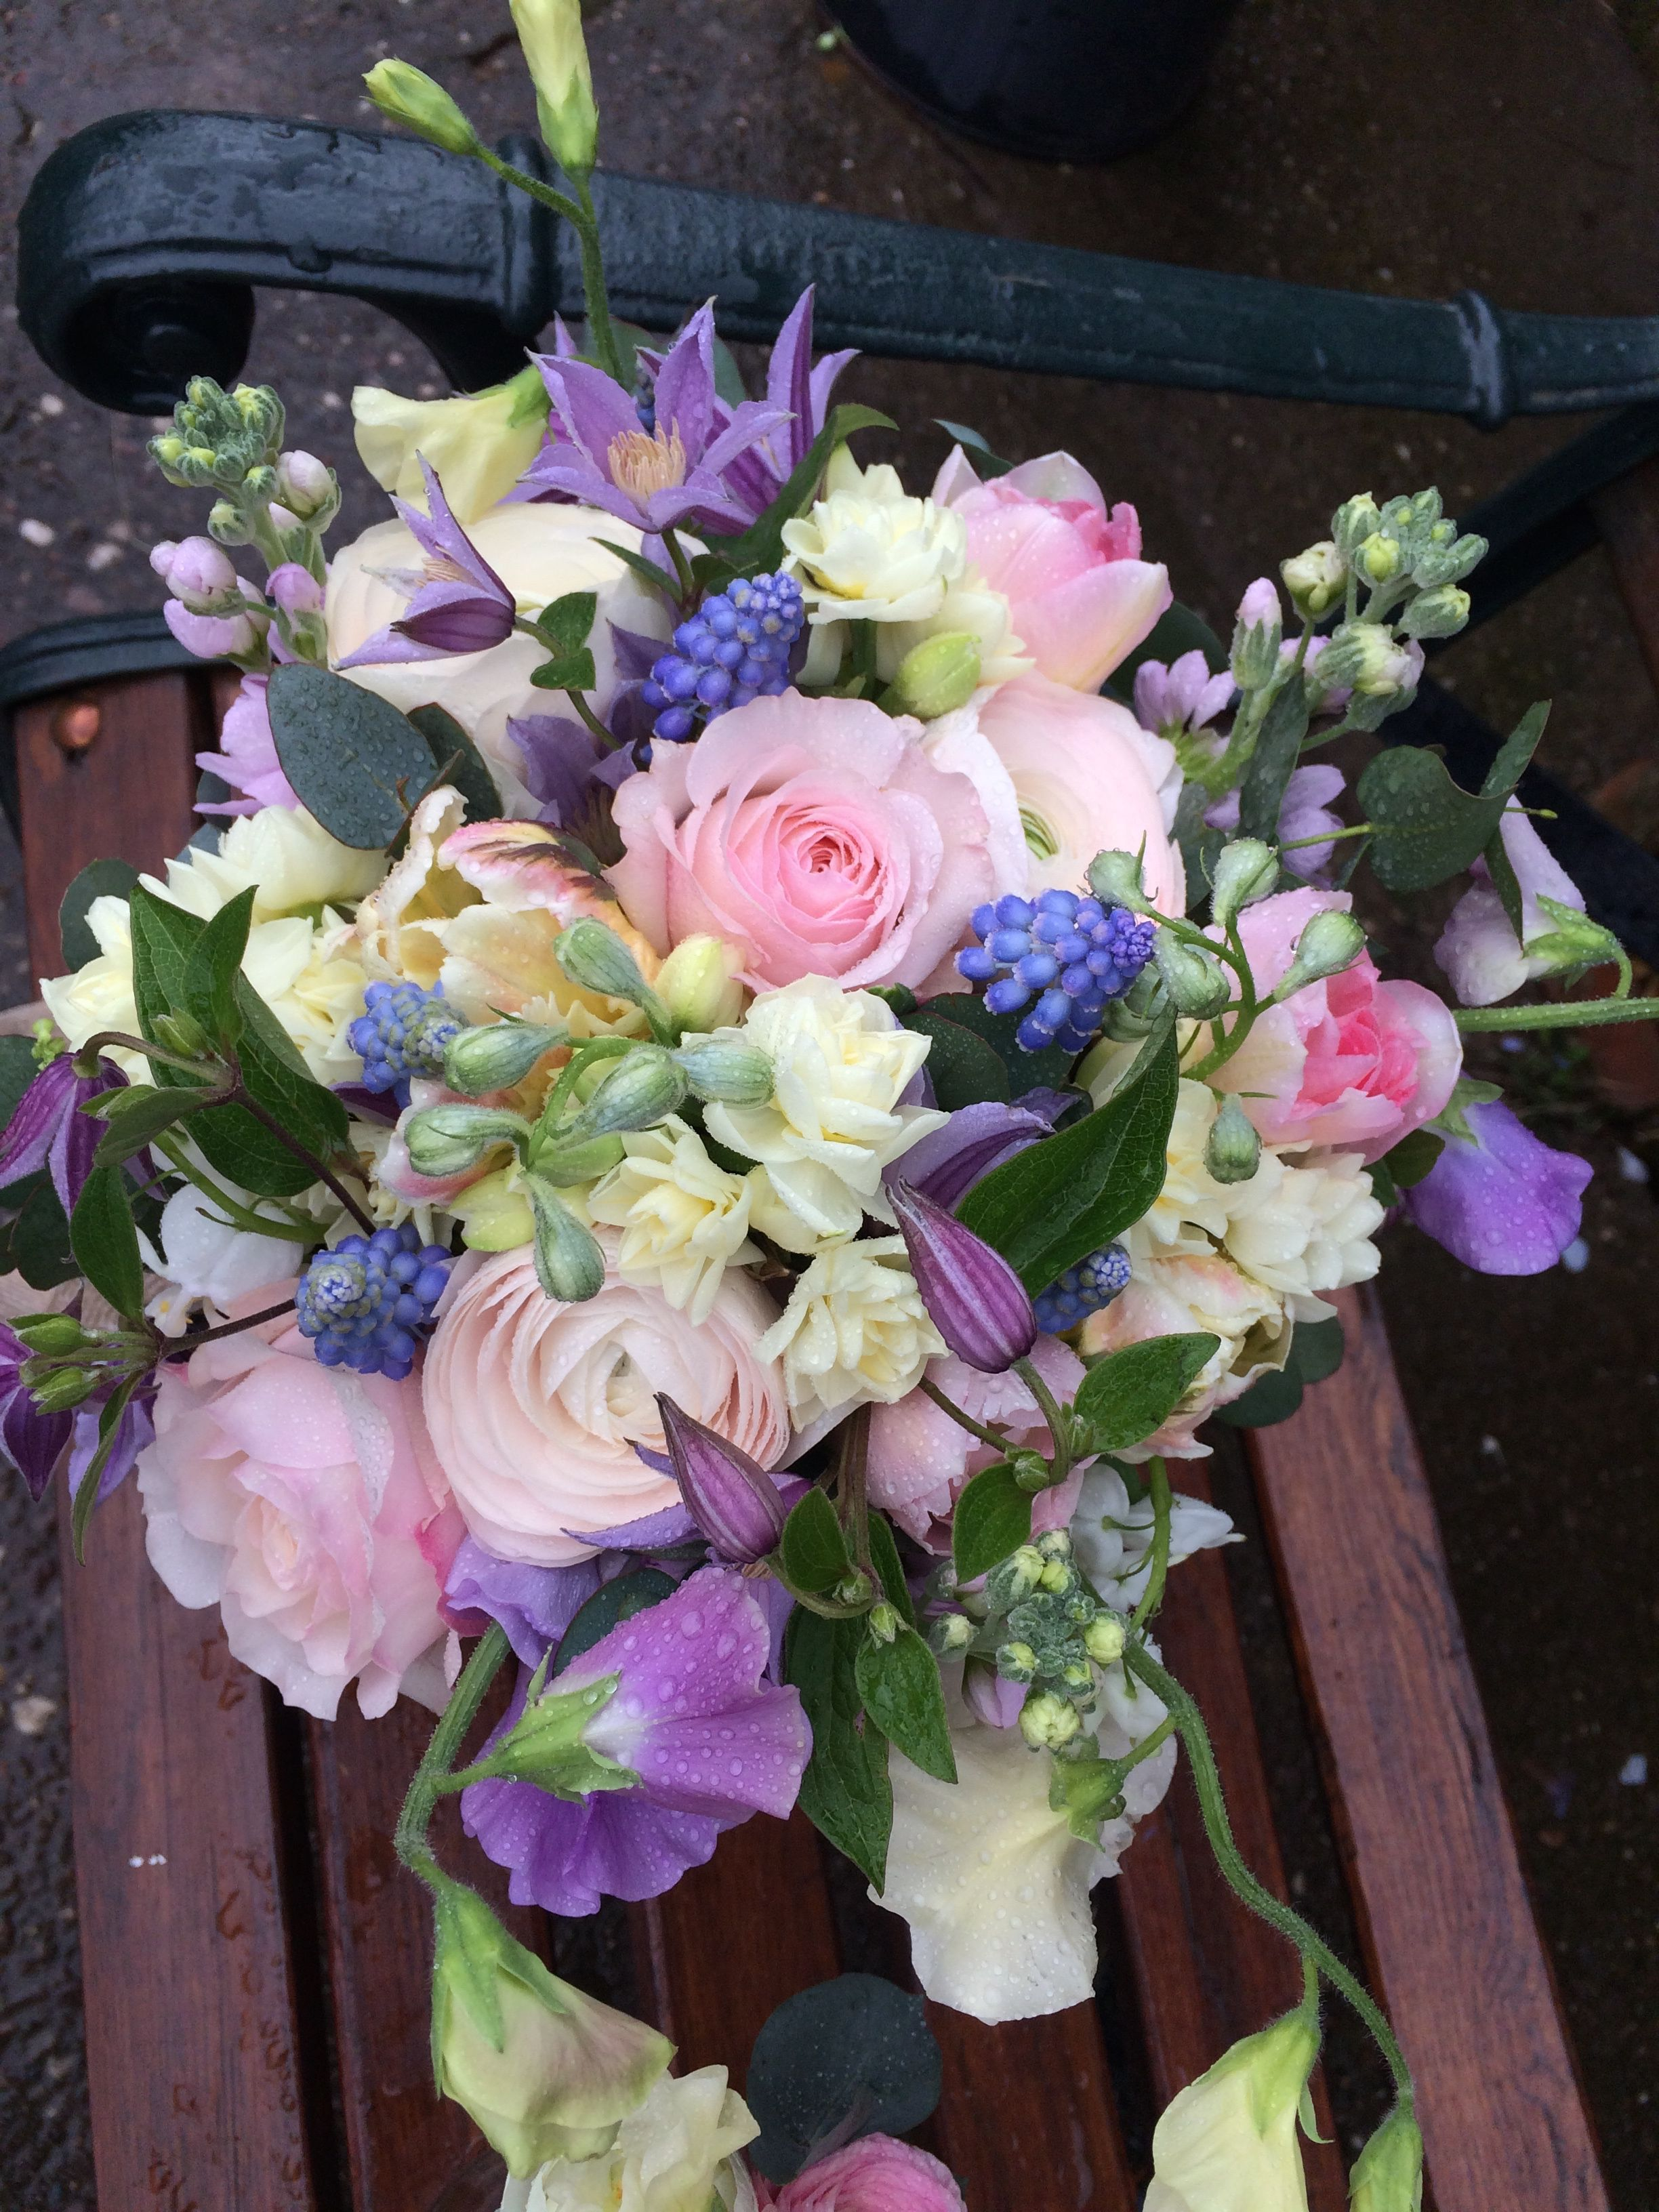 Bride's Bouquet A fragrant Rose, Sweet Pea, and Stock